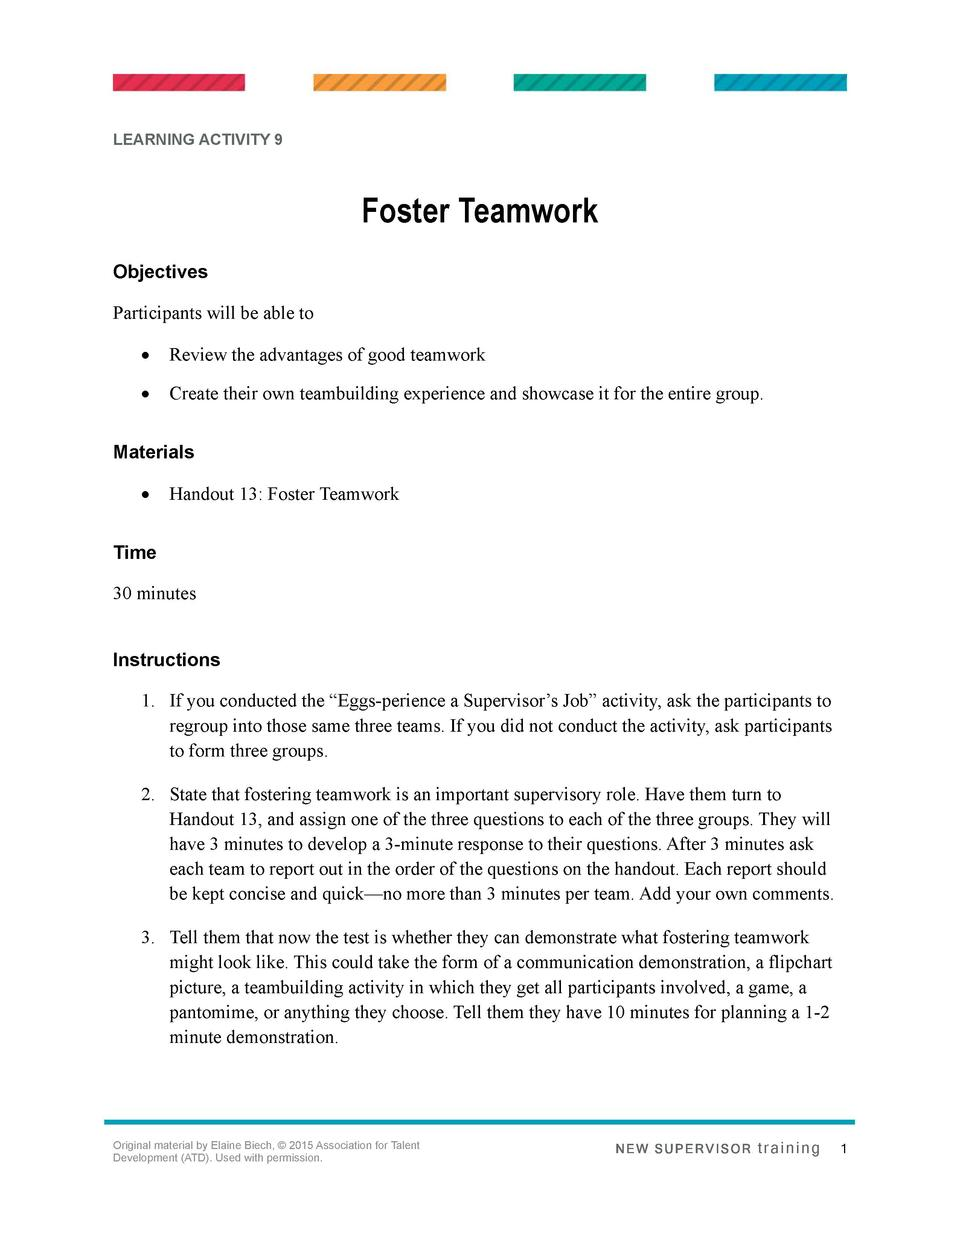 LEARNING ACTIVITY 9  Foster Teamwork Objectives Participants will be able to      Review the advantages of good teamwork  ...